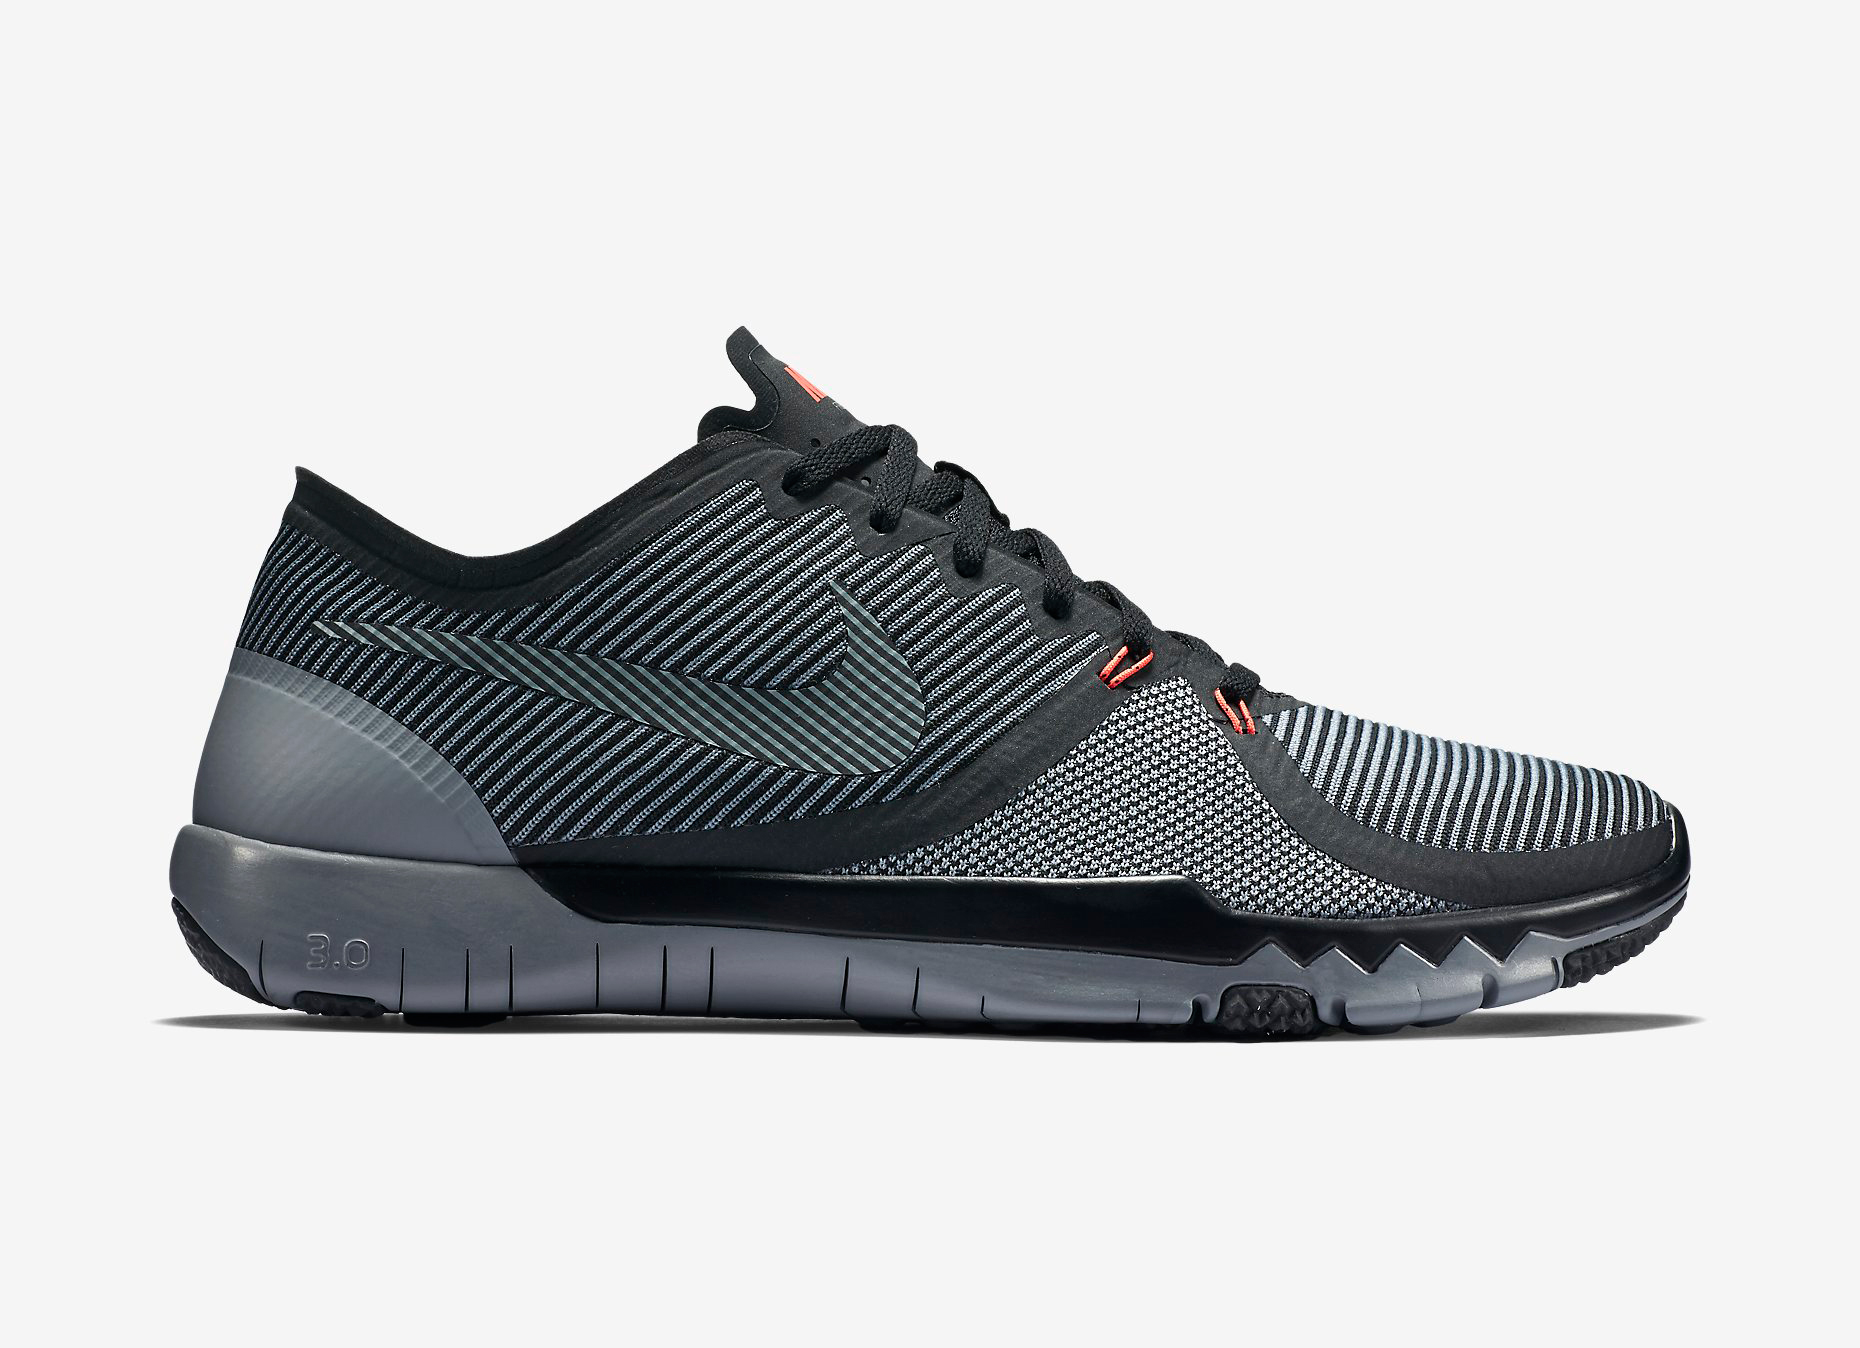 Nike Free Trainer 3.0 V4 Black/Cool Grey J10f3536